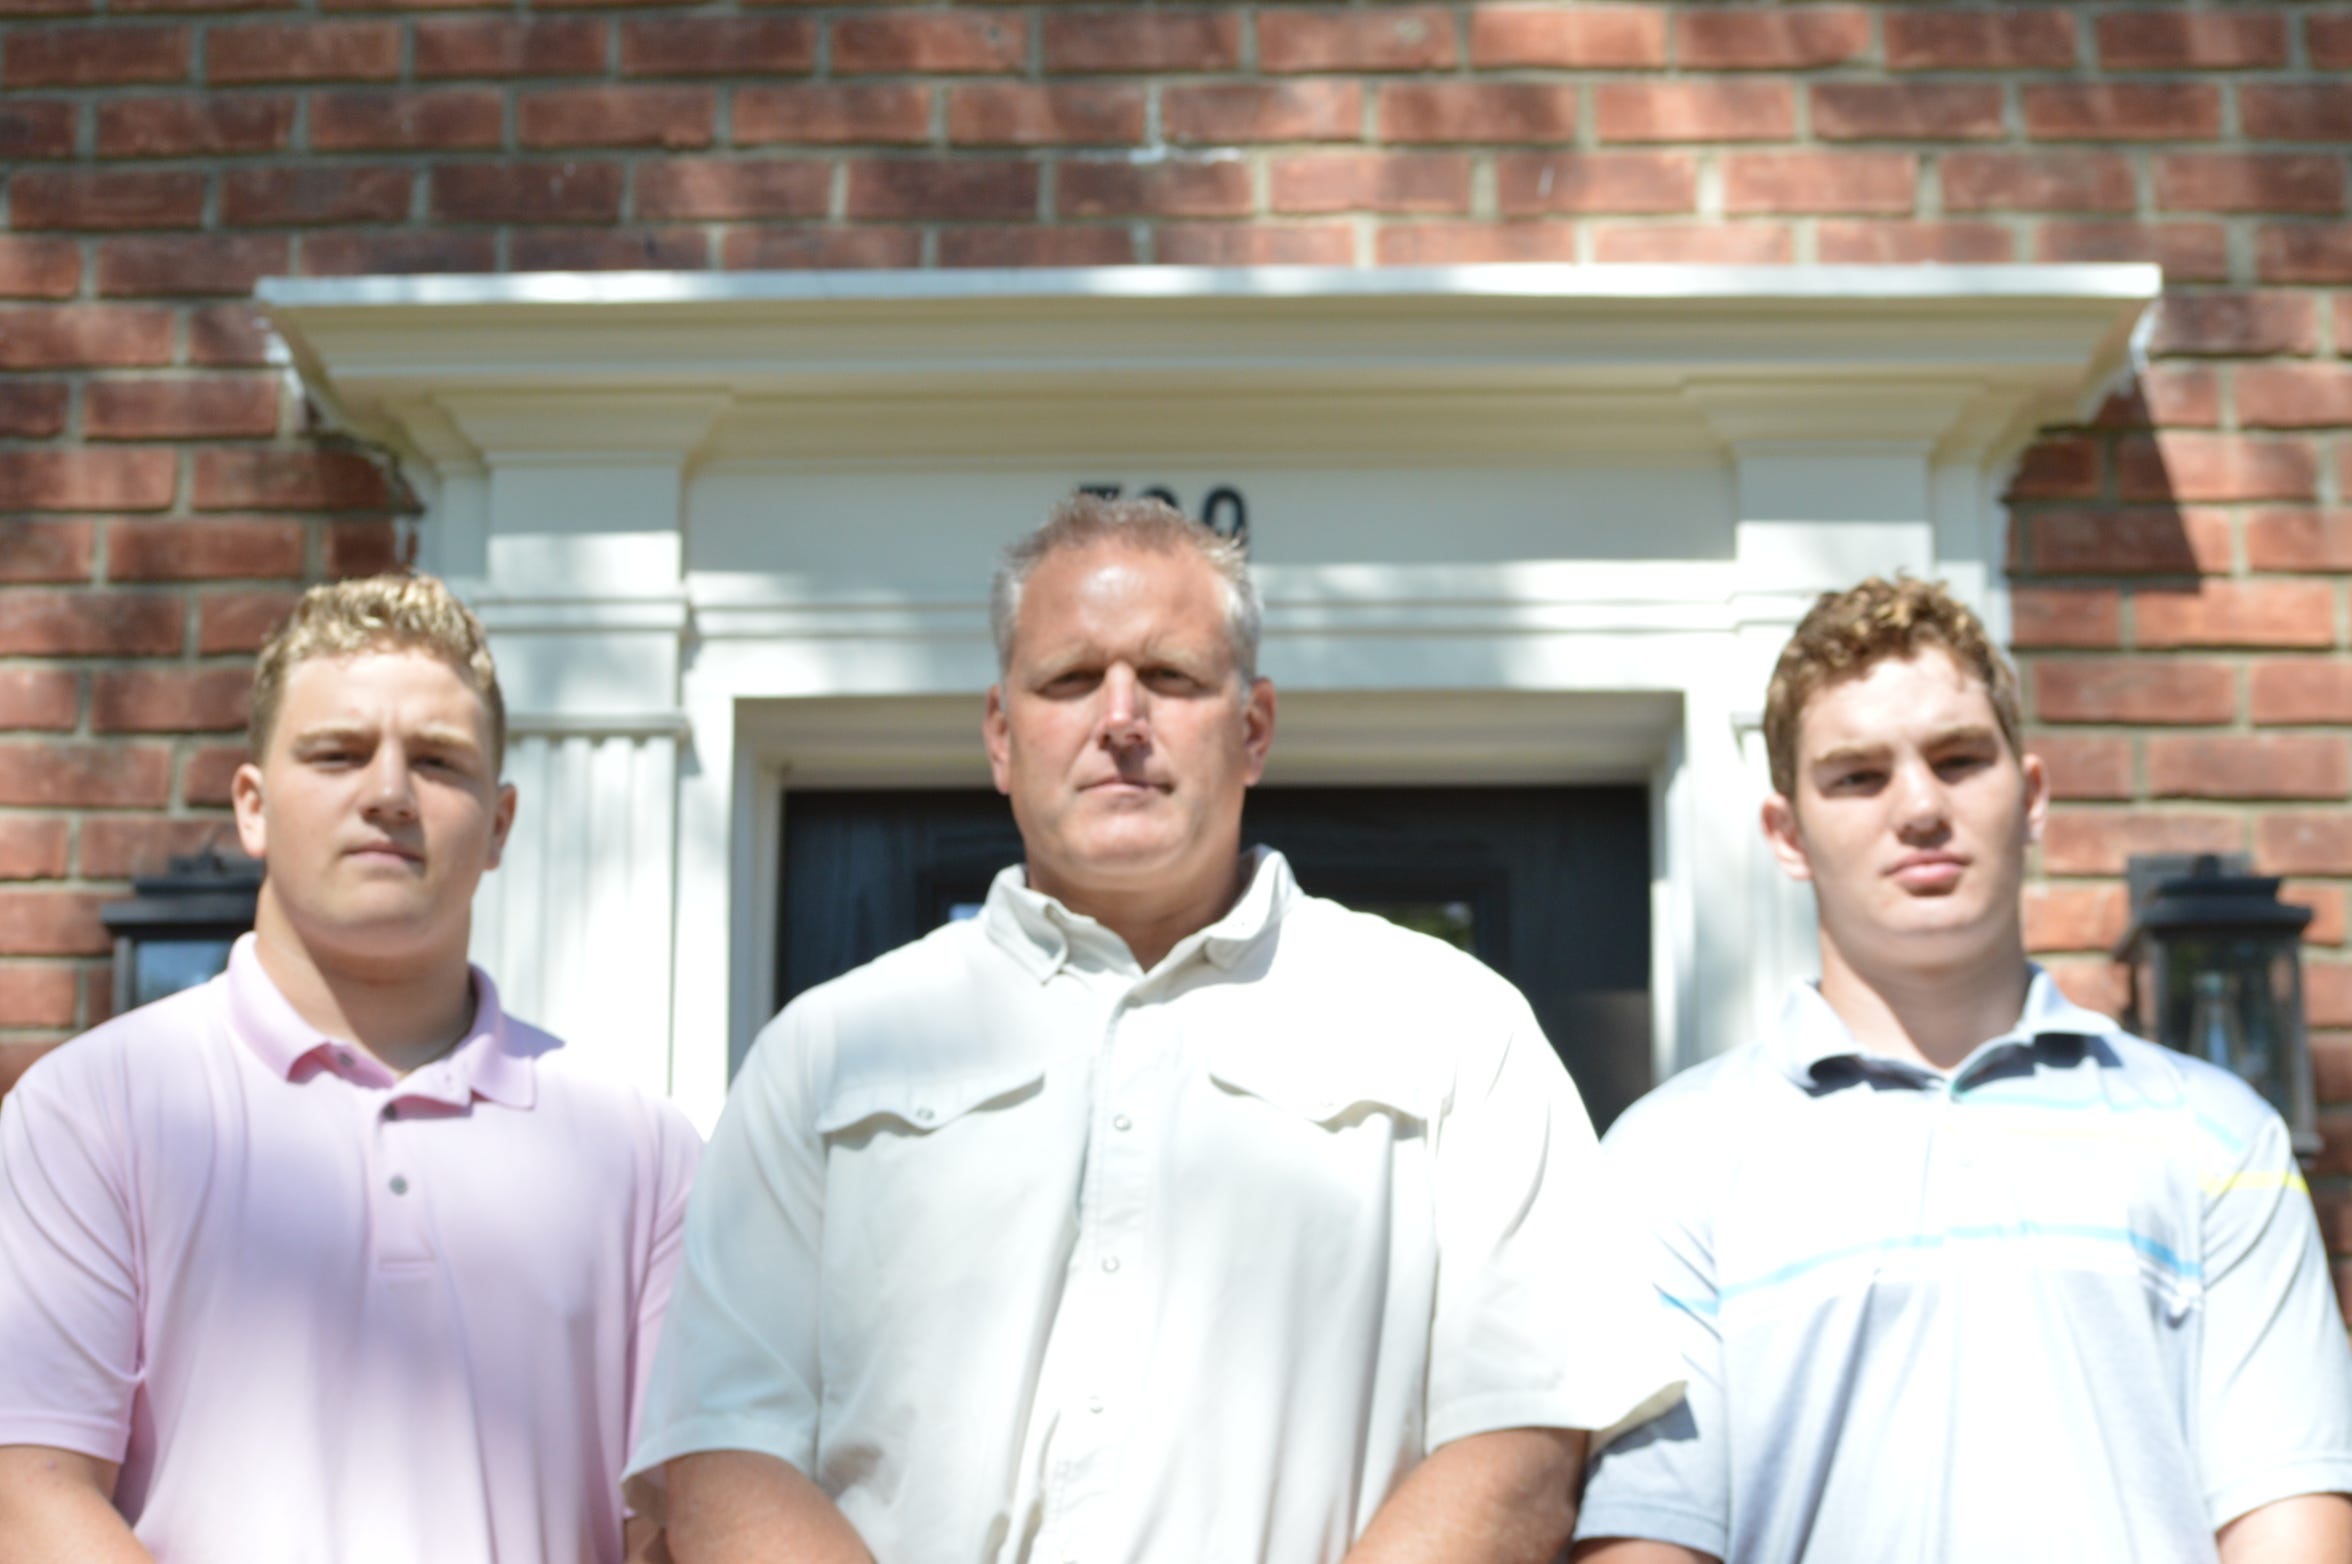 Jim DeWald, head coach at Birmingham Seaholm, stands with his two sons: Caden and James.